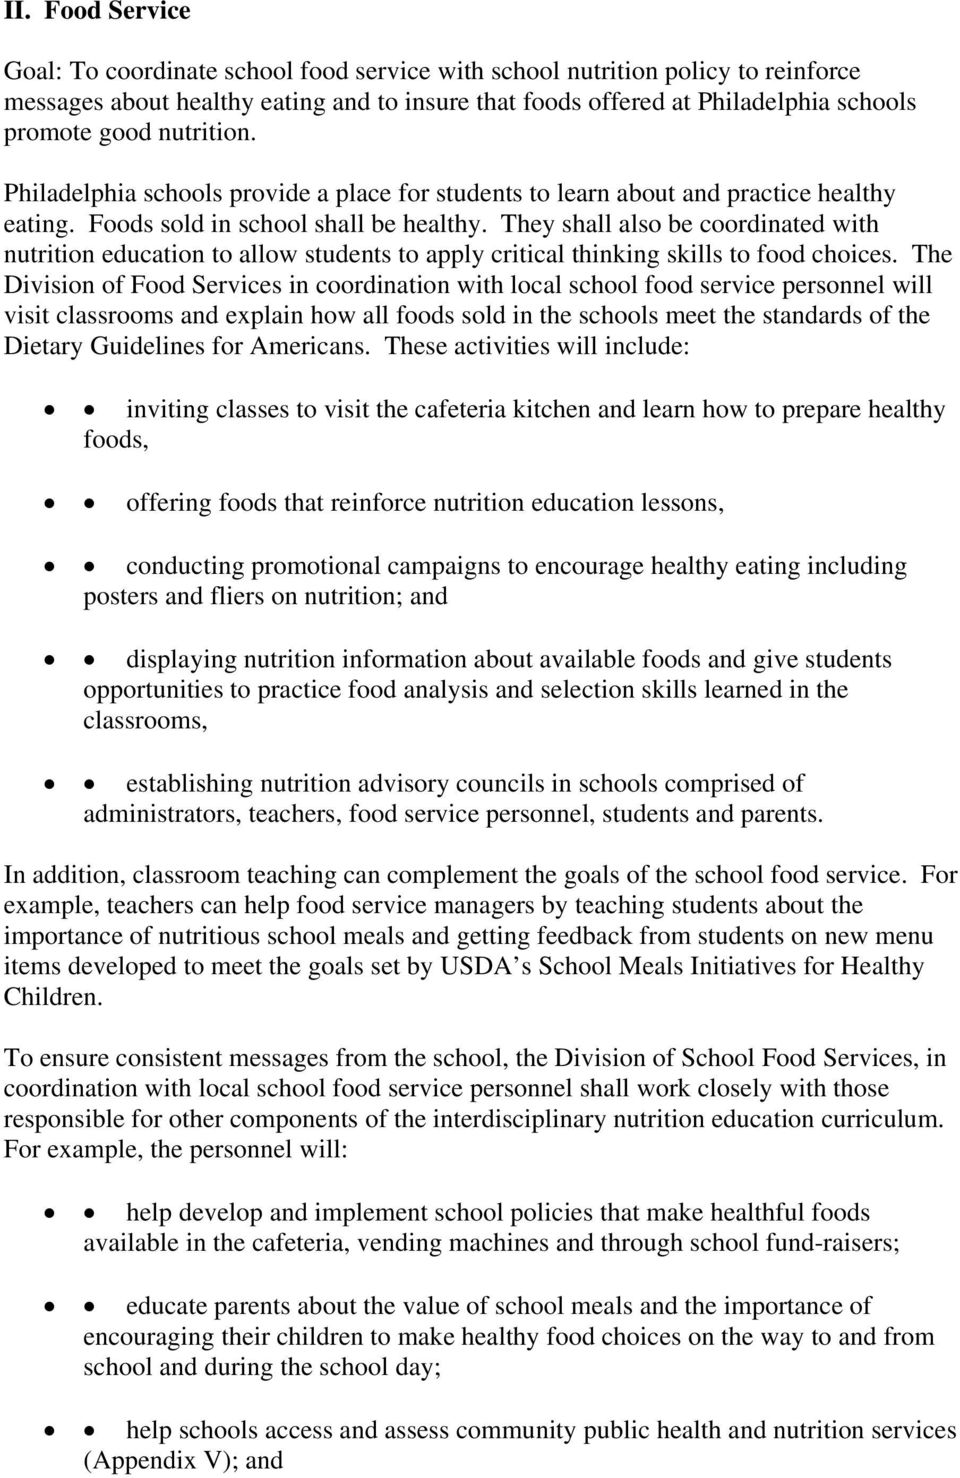 They shall also be coordinated with nutrition education to allow students to apply critical thinking skills to food choices.